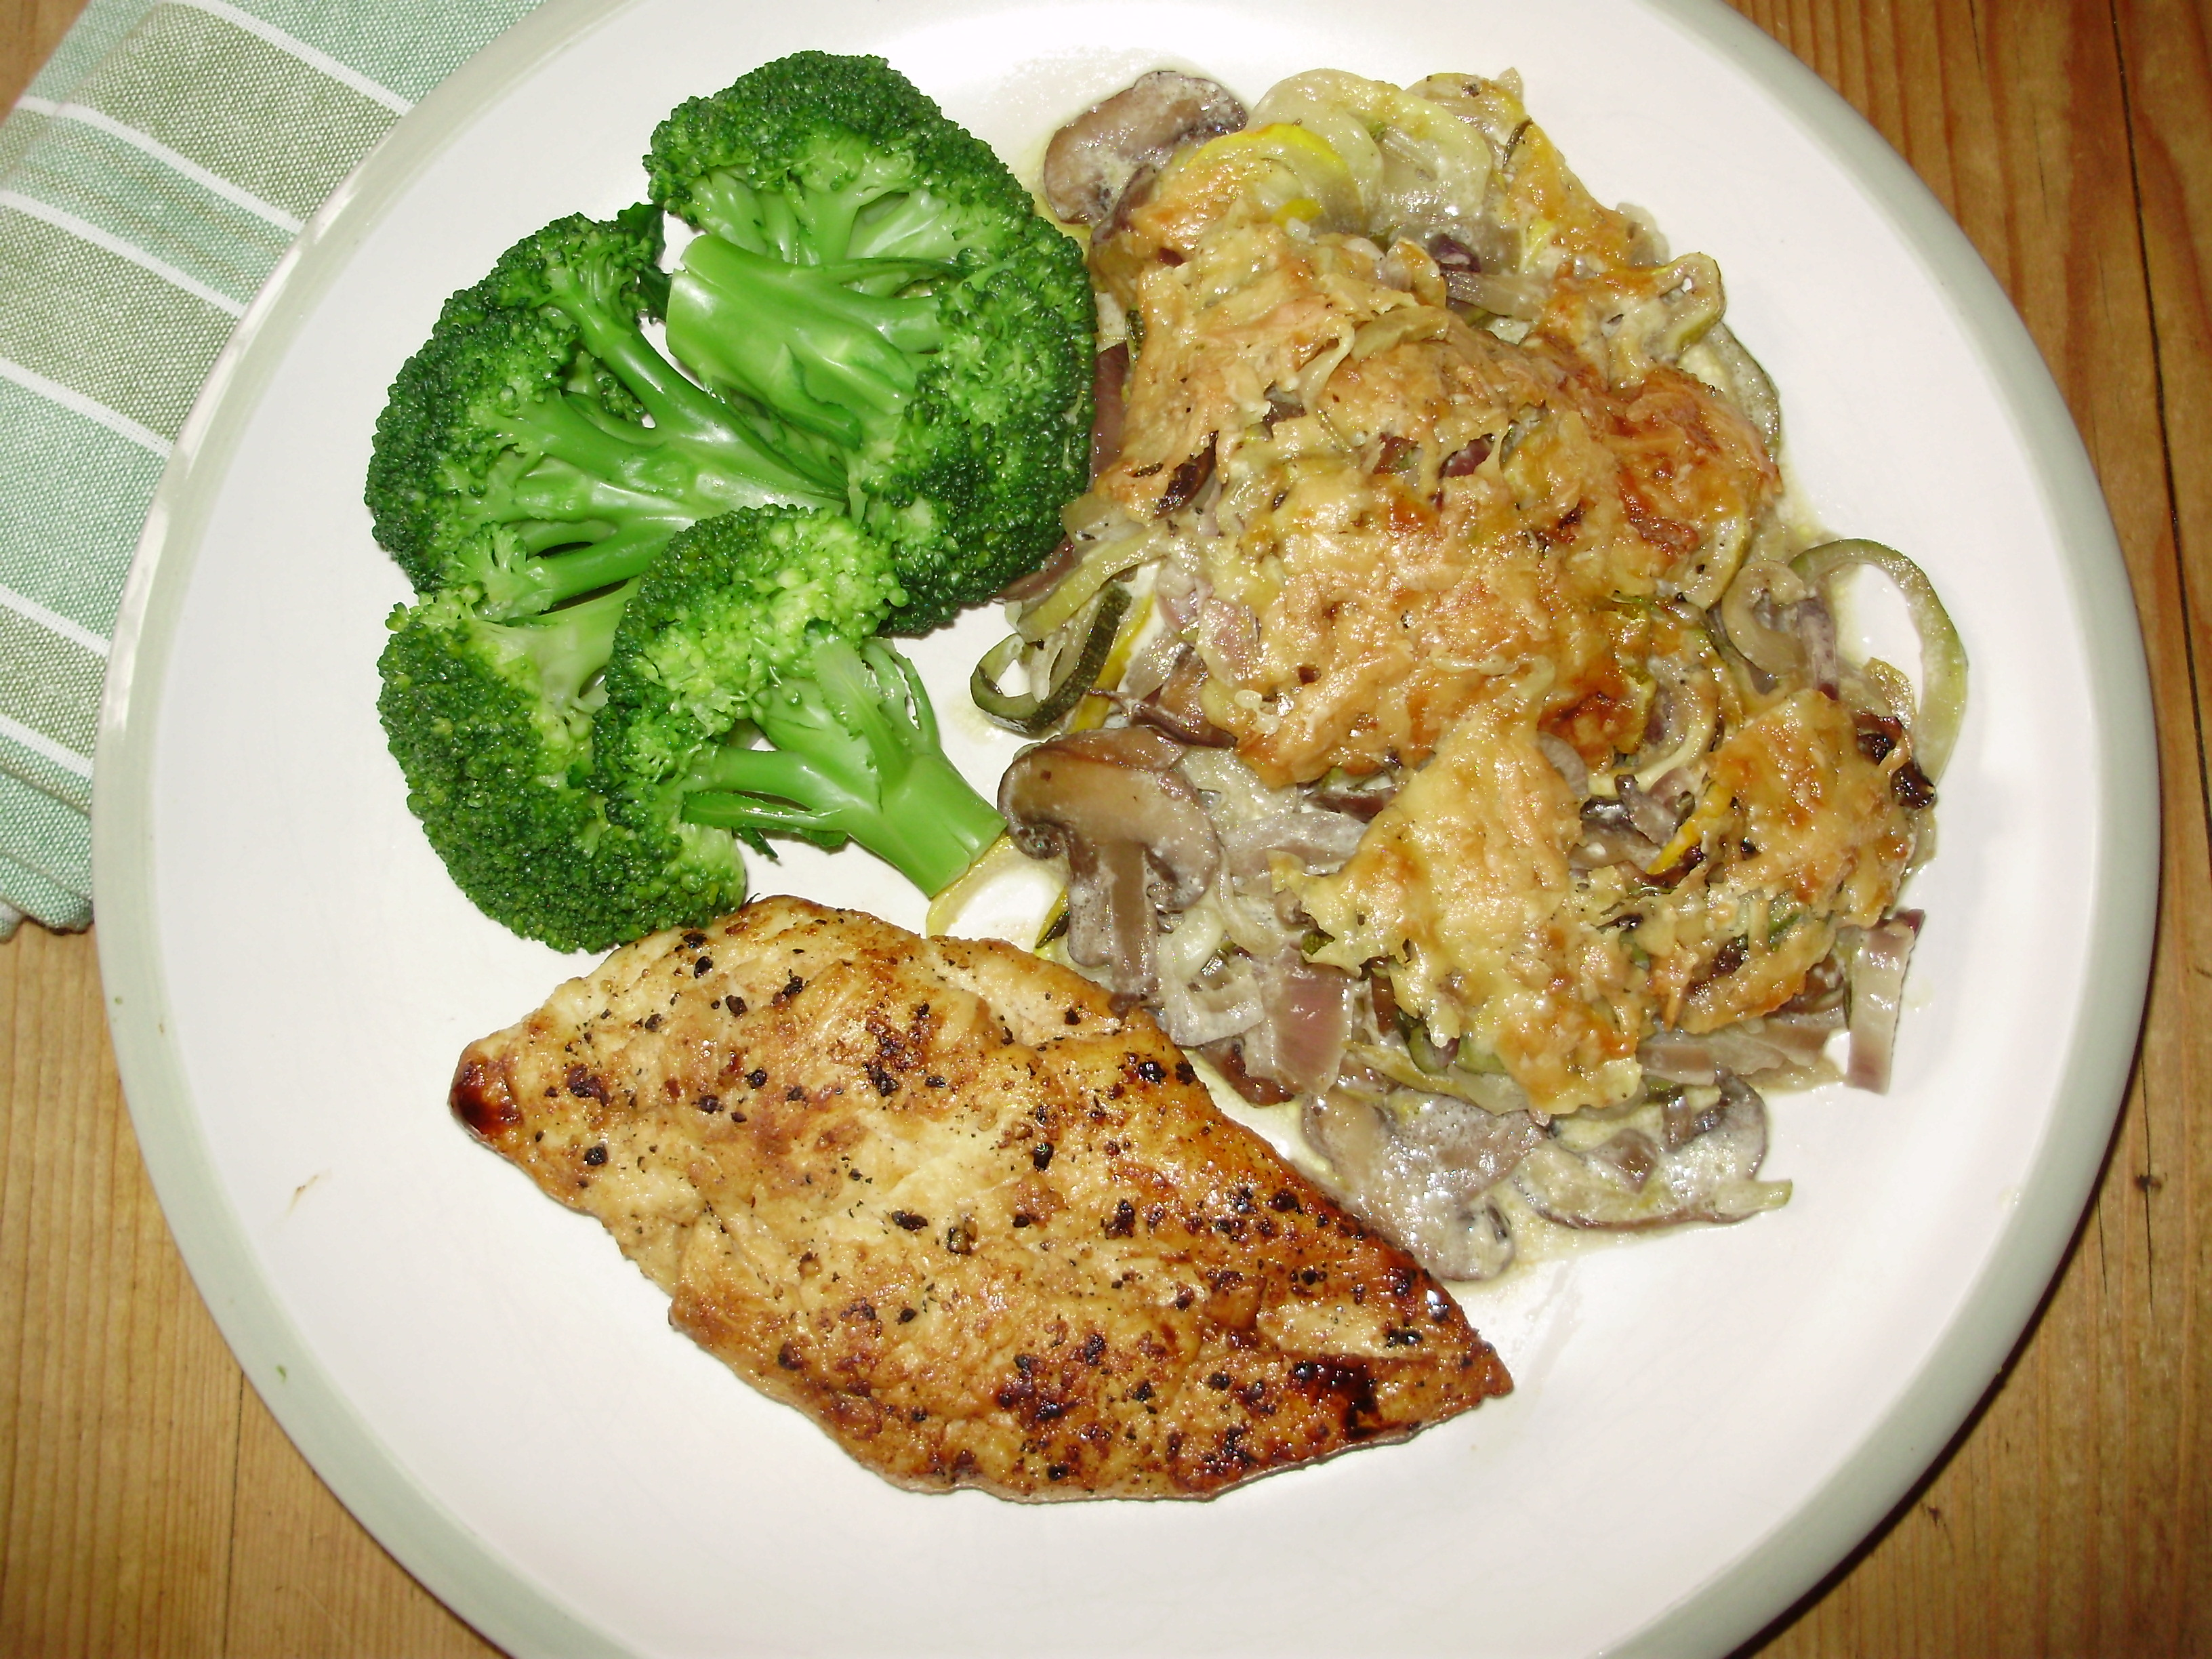 Creamy courgette & mushroom gratin served with black pepper chicken breast & broccoli